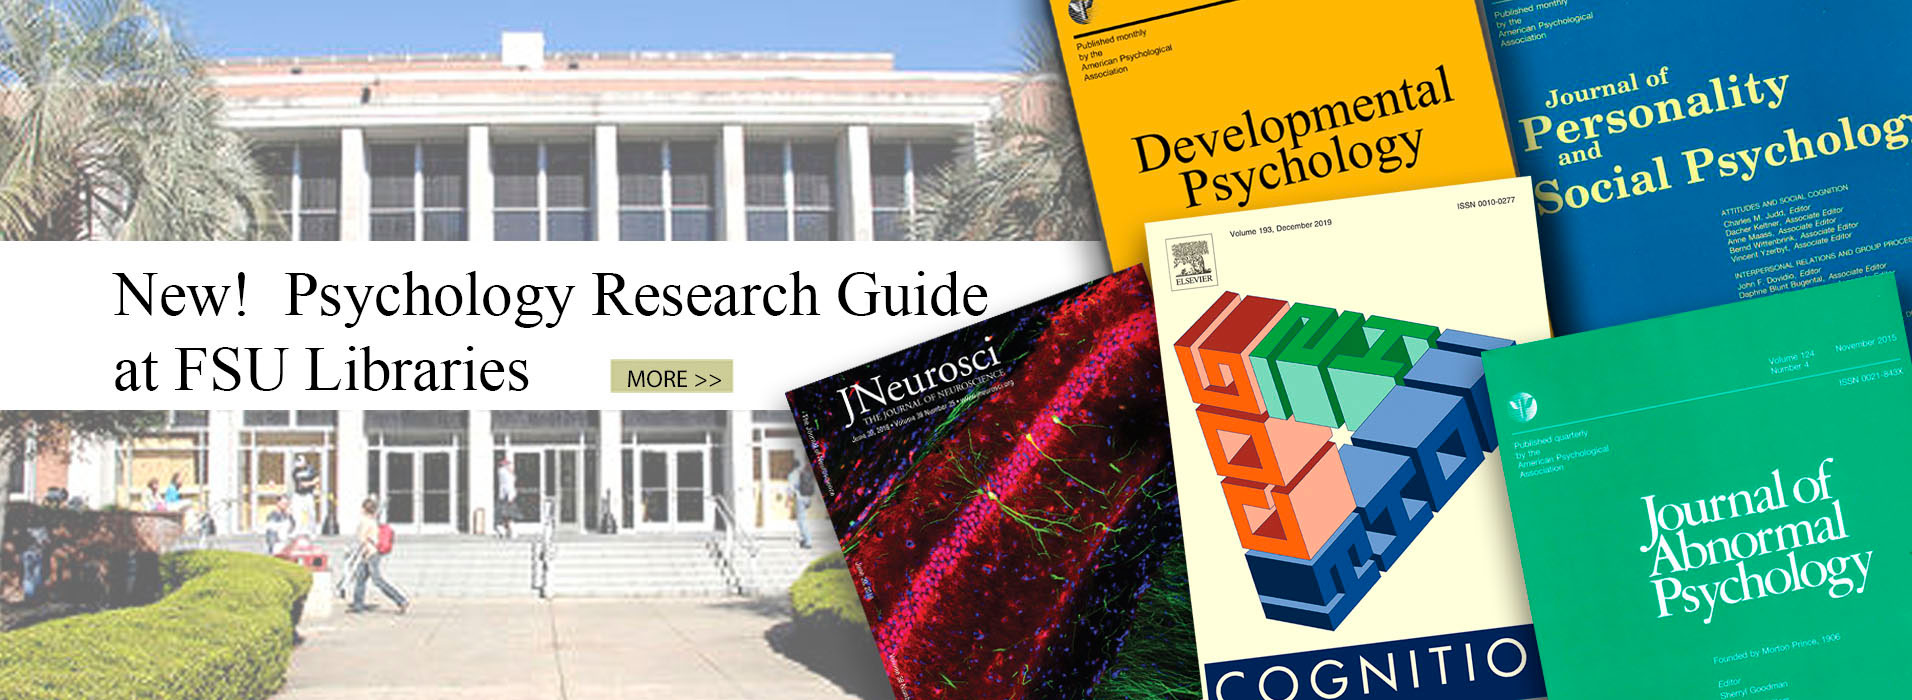 Psychology Research Guide at FSU Libraries